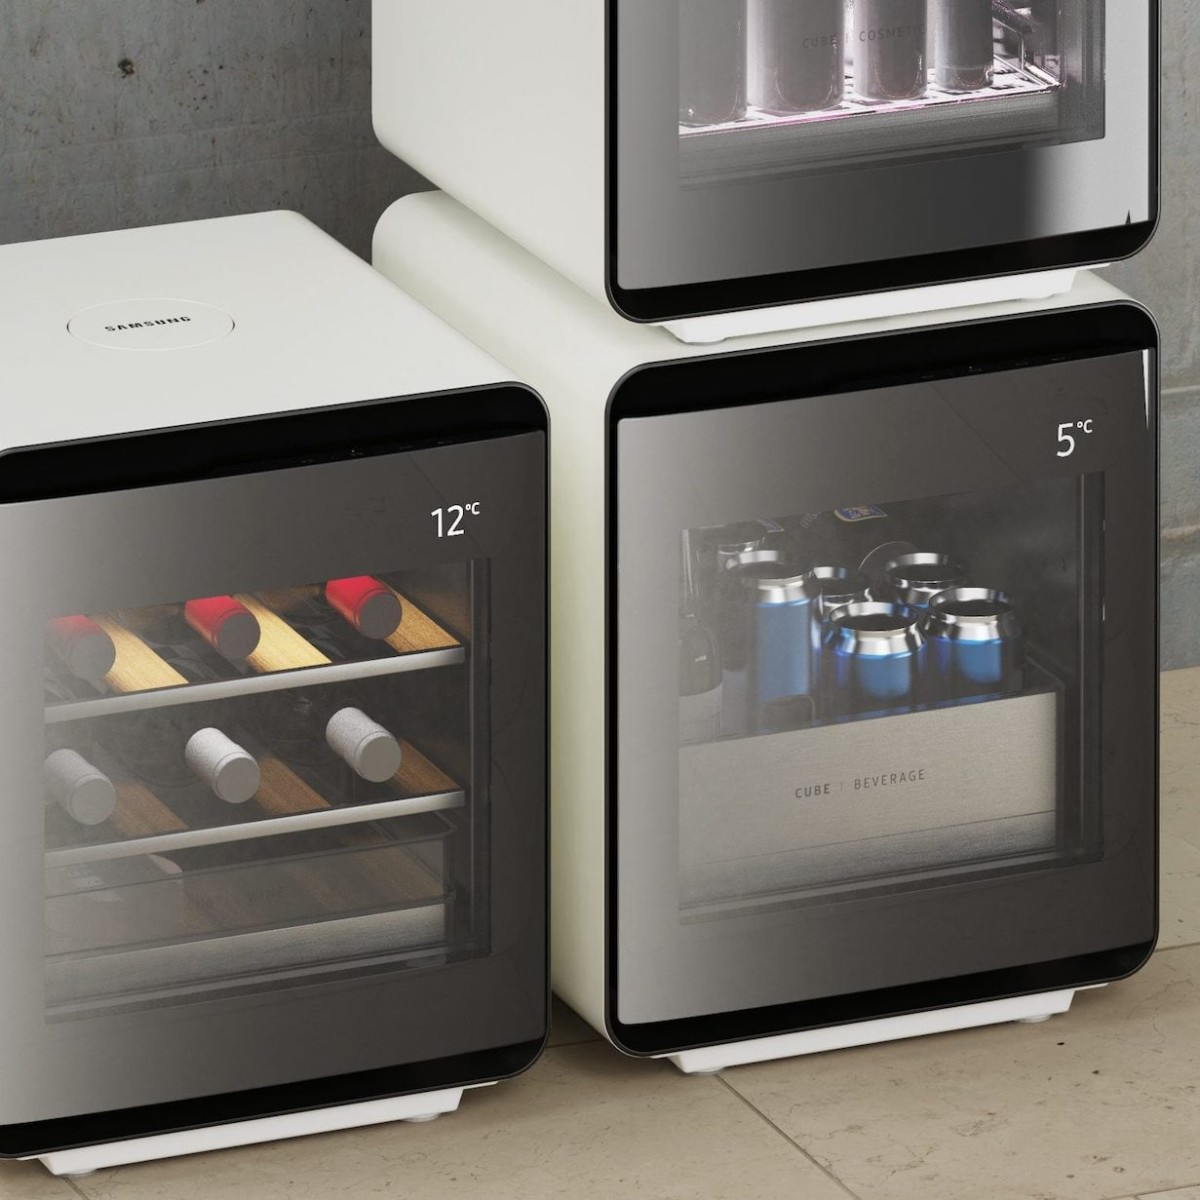 Samsung Cube Compact Refrigerator Series comes in three specific models